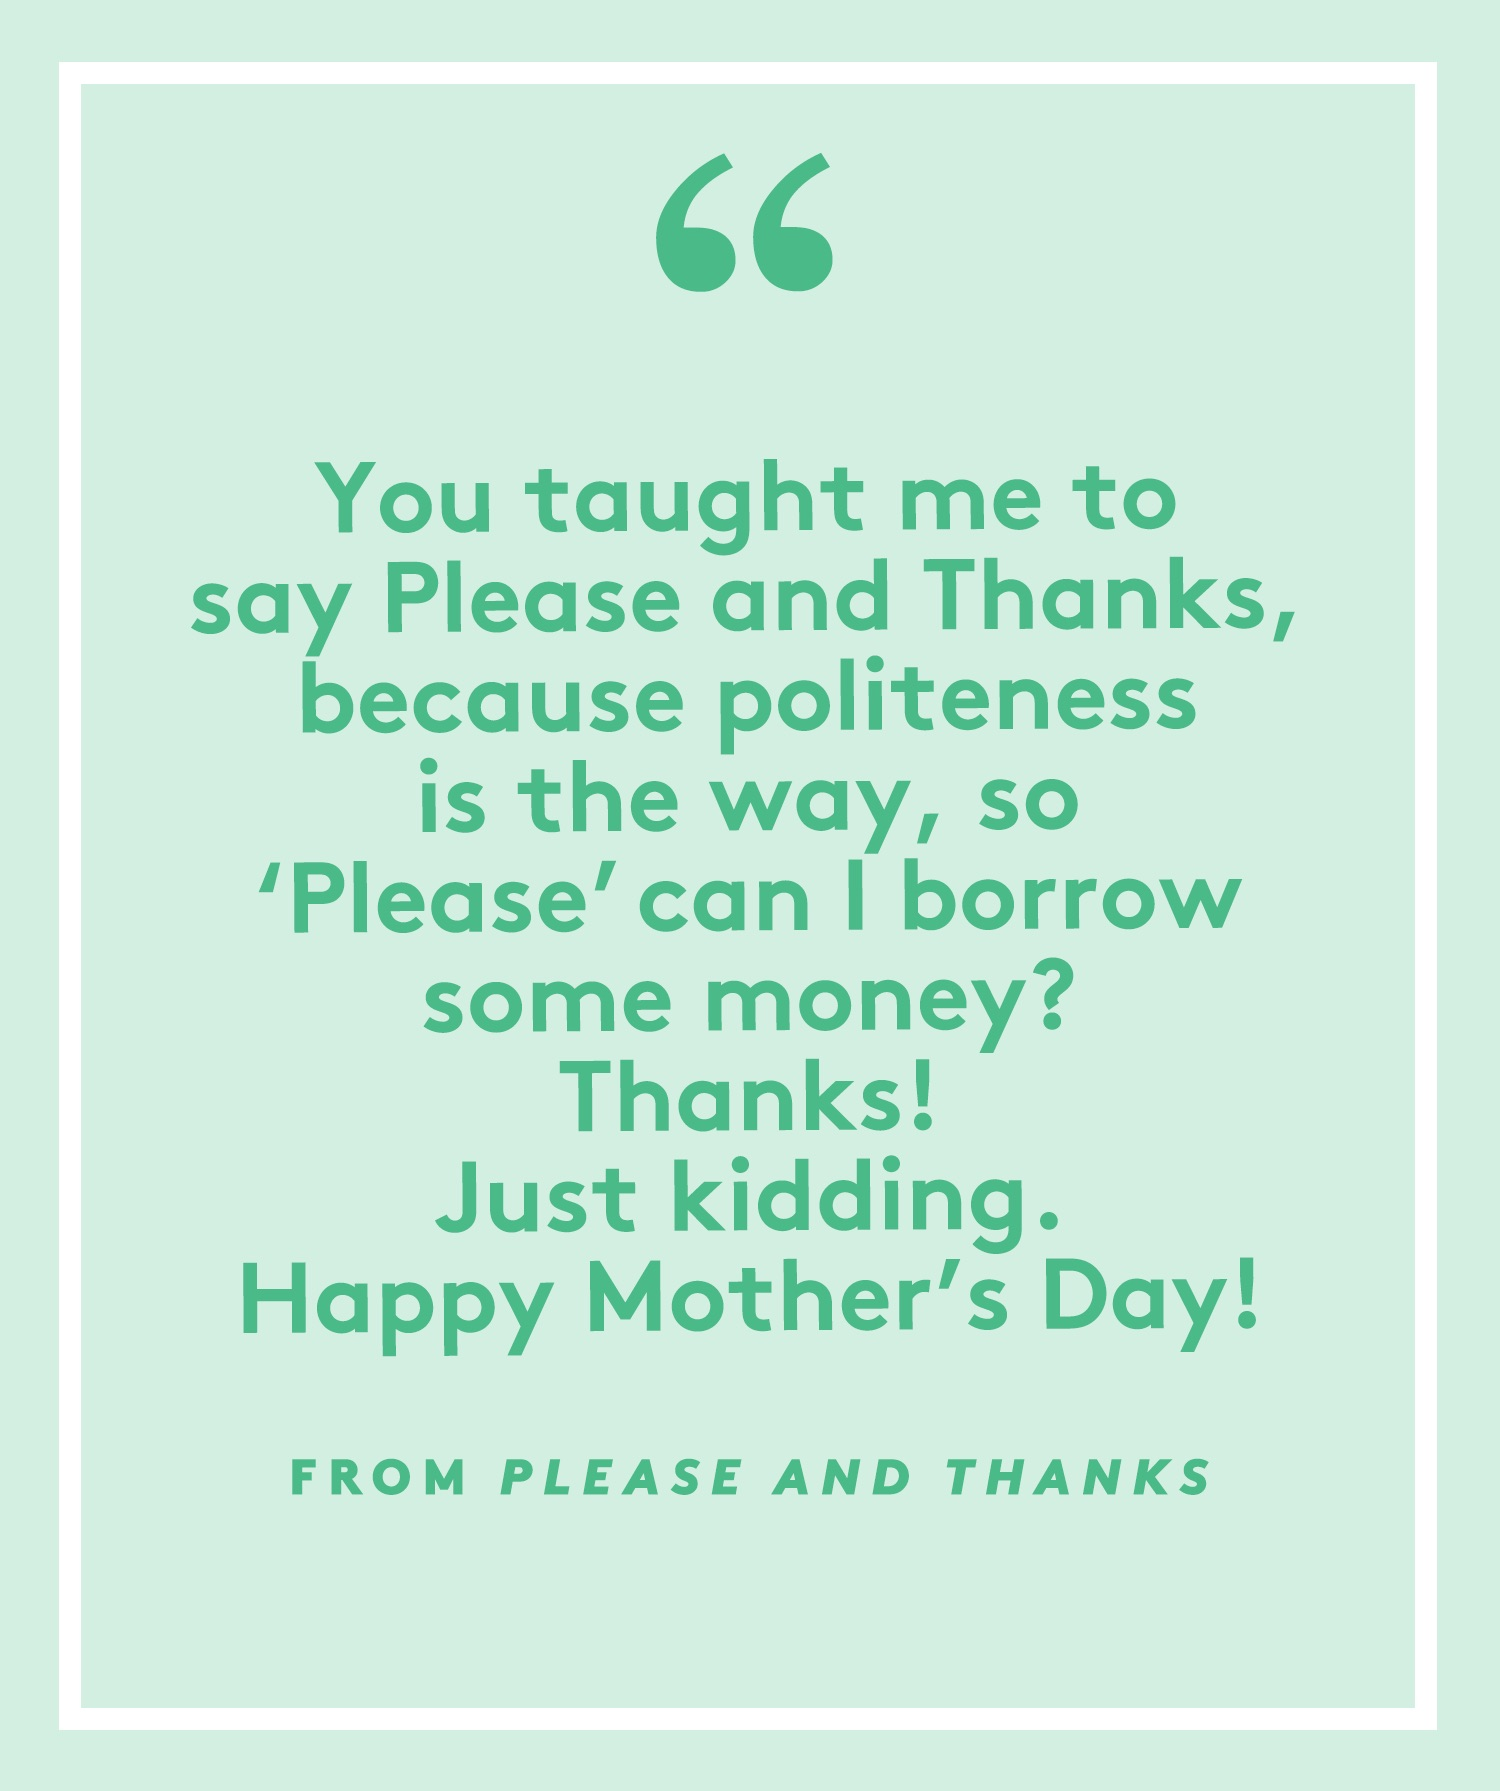 Funny Poems for Mother's Day: Please and Thanks